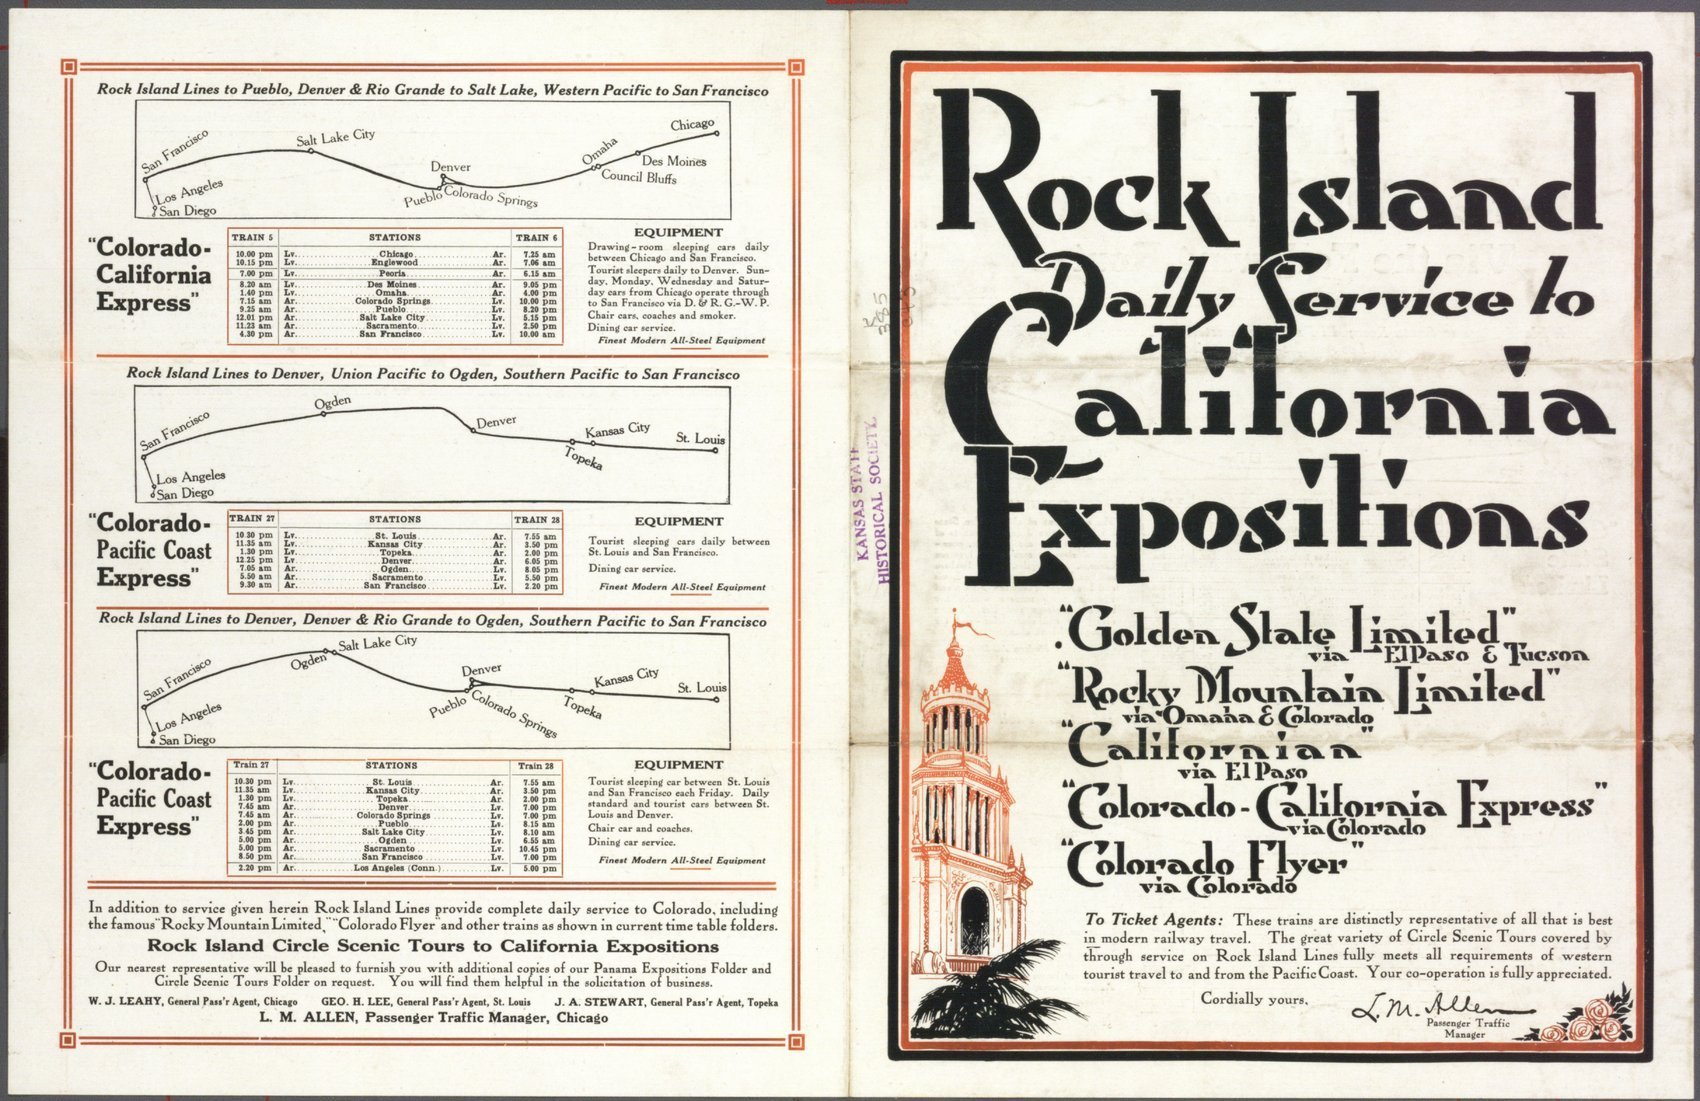 Rock Island to California expositions - 1